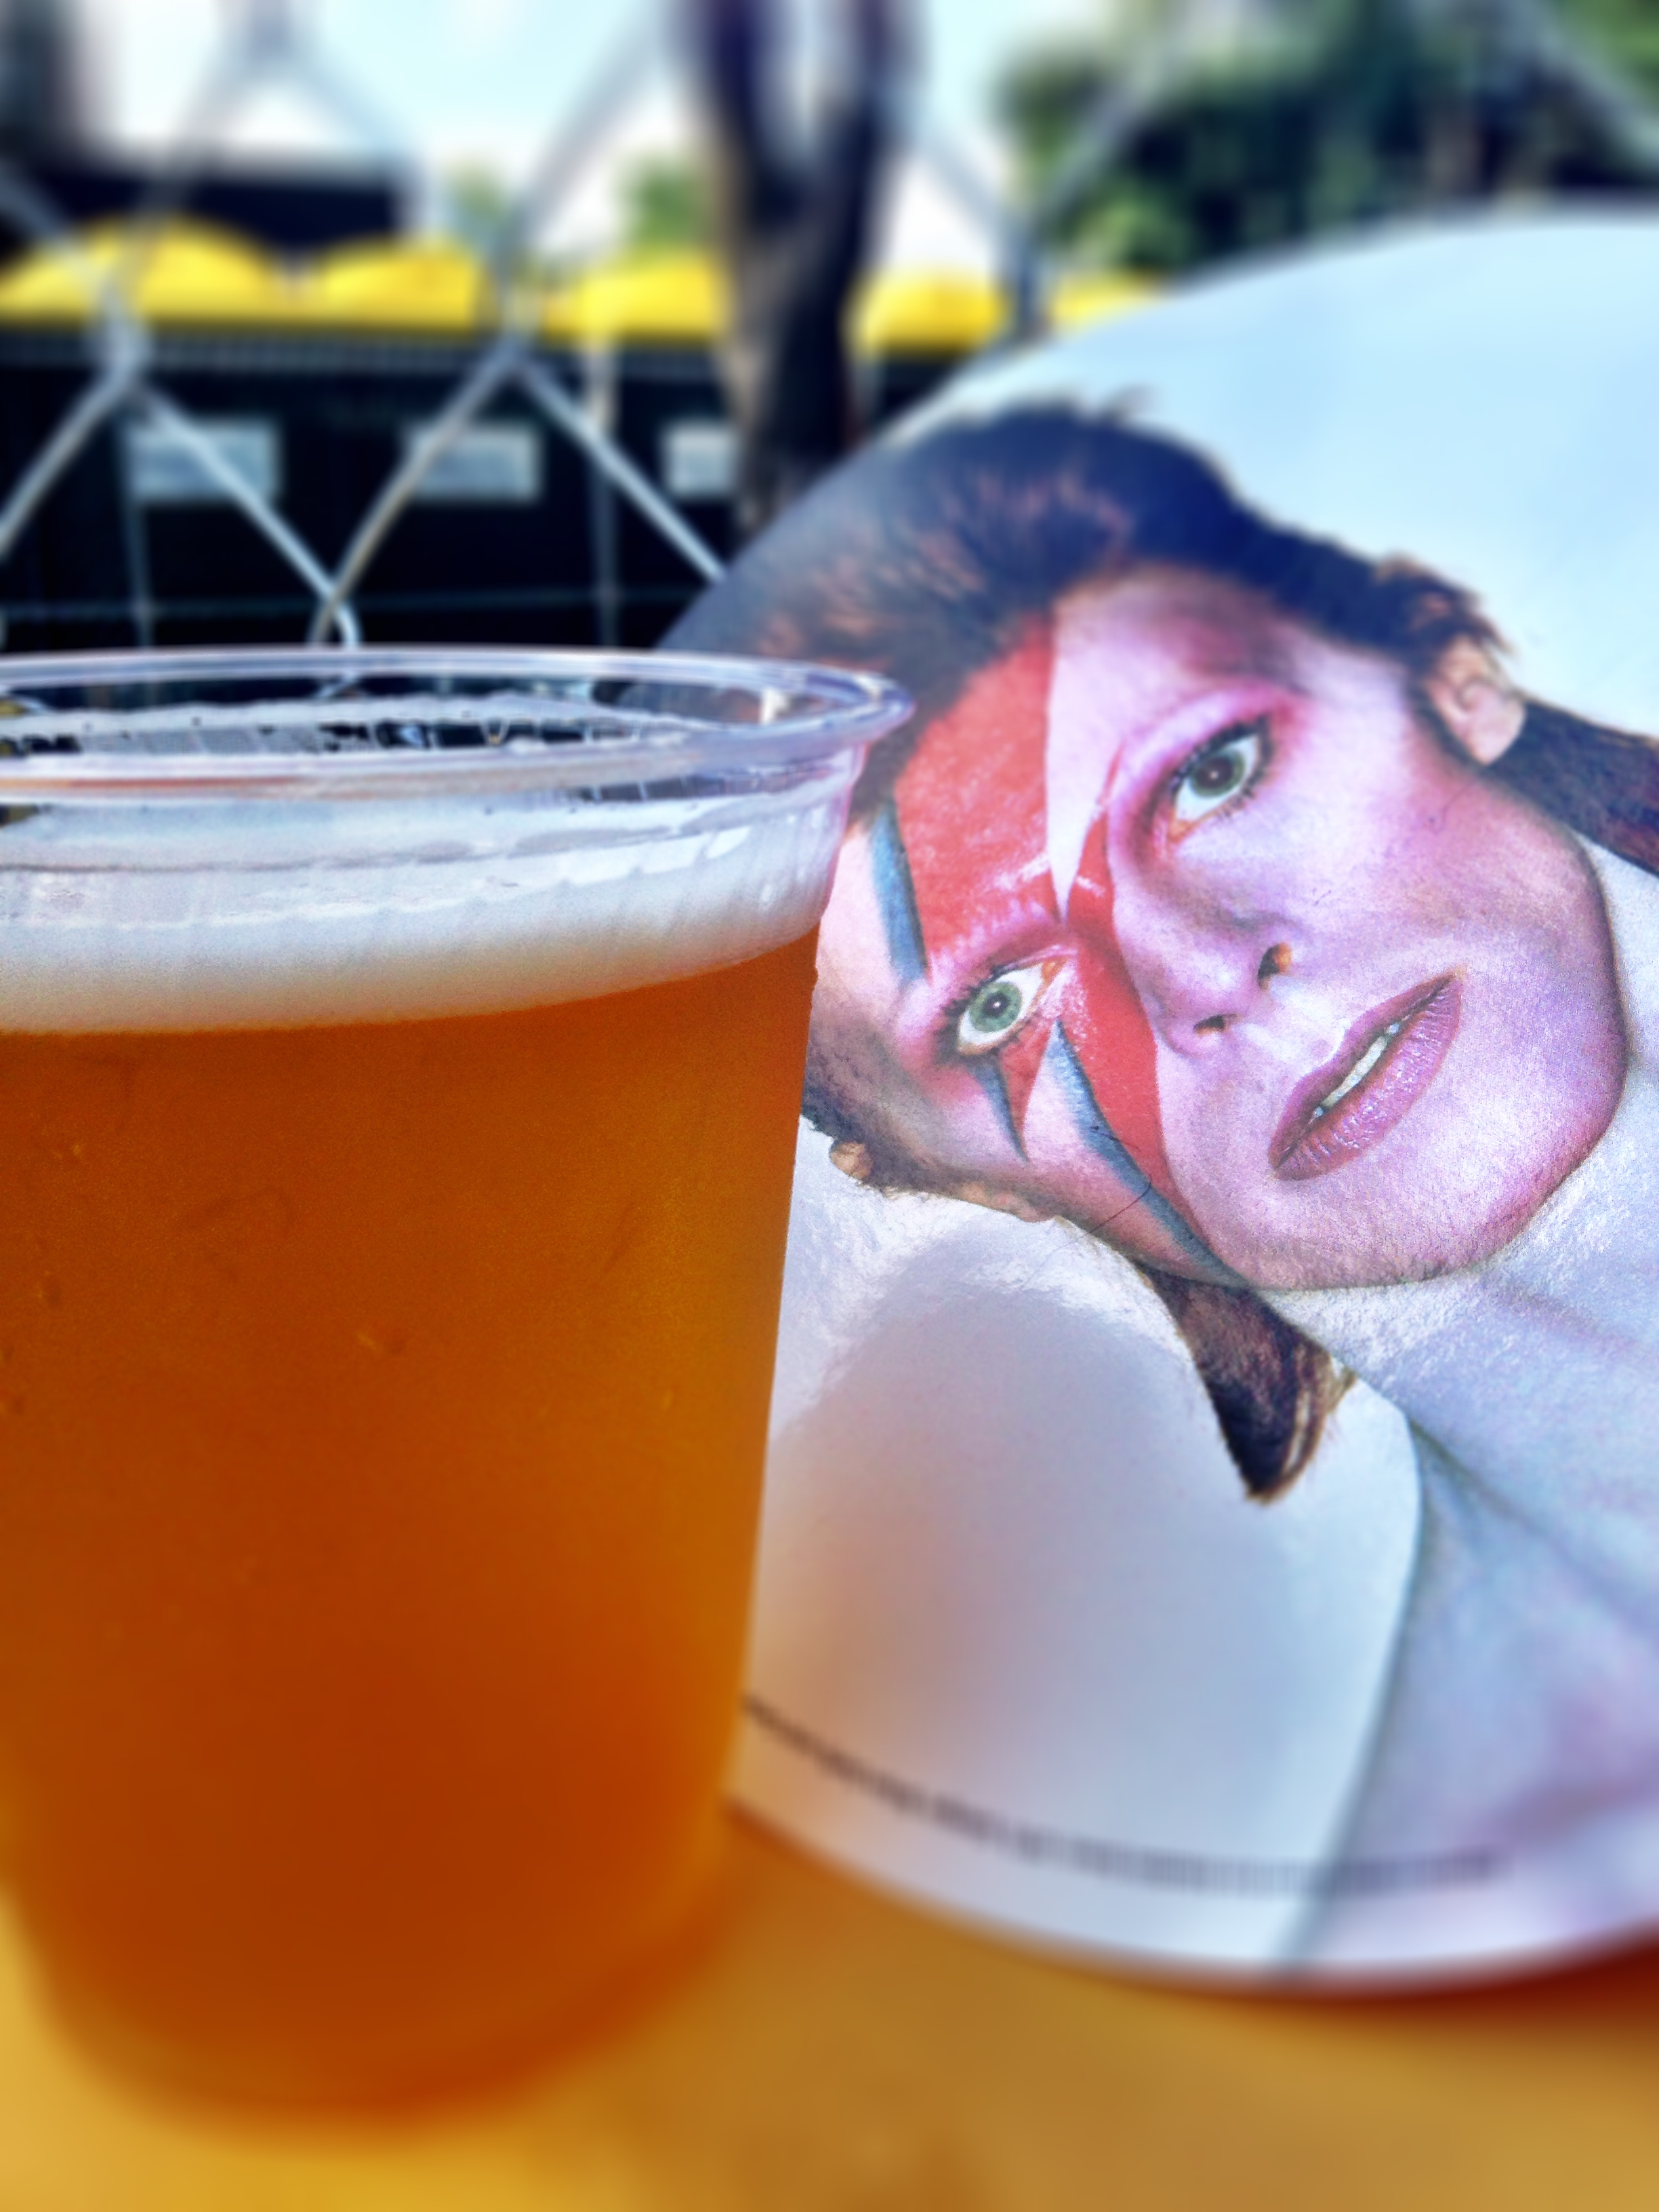 5 Rabbit Gringolandia Super Pils and a pretty sweet David Bowie, Aladdin Sane hand fan courtesy of 93XRT